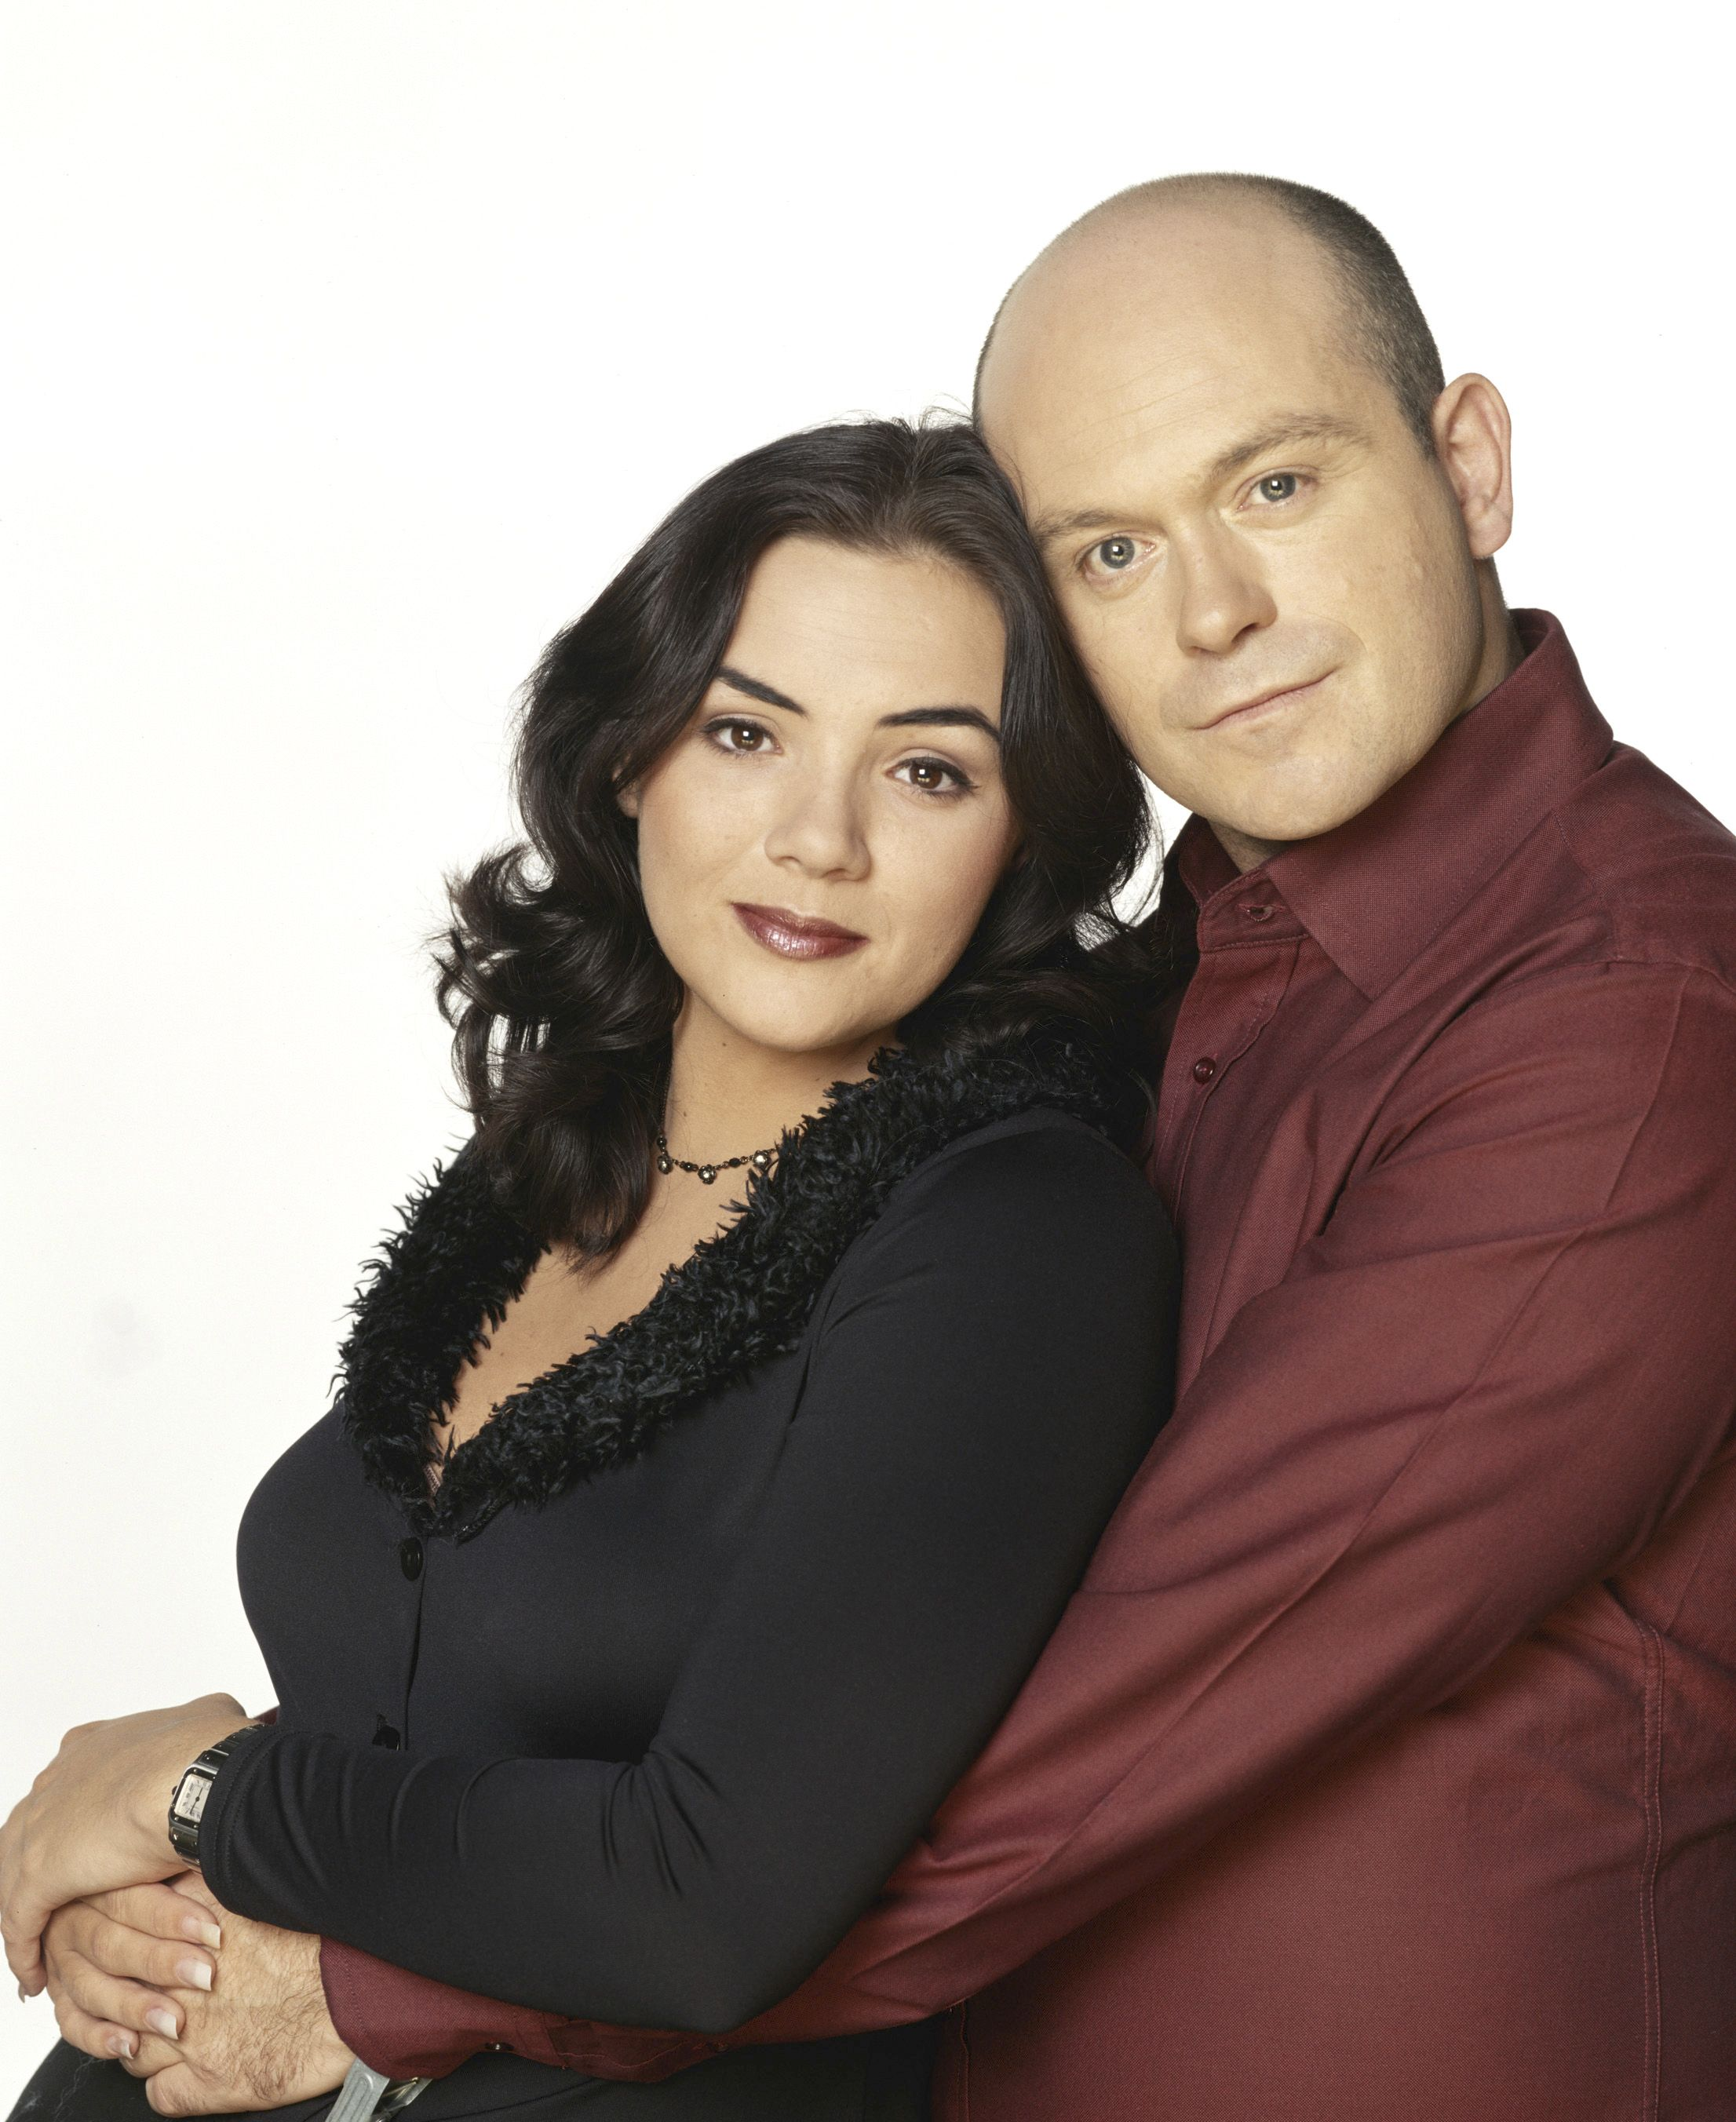 Grant And Tiffany Reunited Ross Kemp And Martine Mccutcheon Will Both Be On Loose Women Today